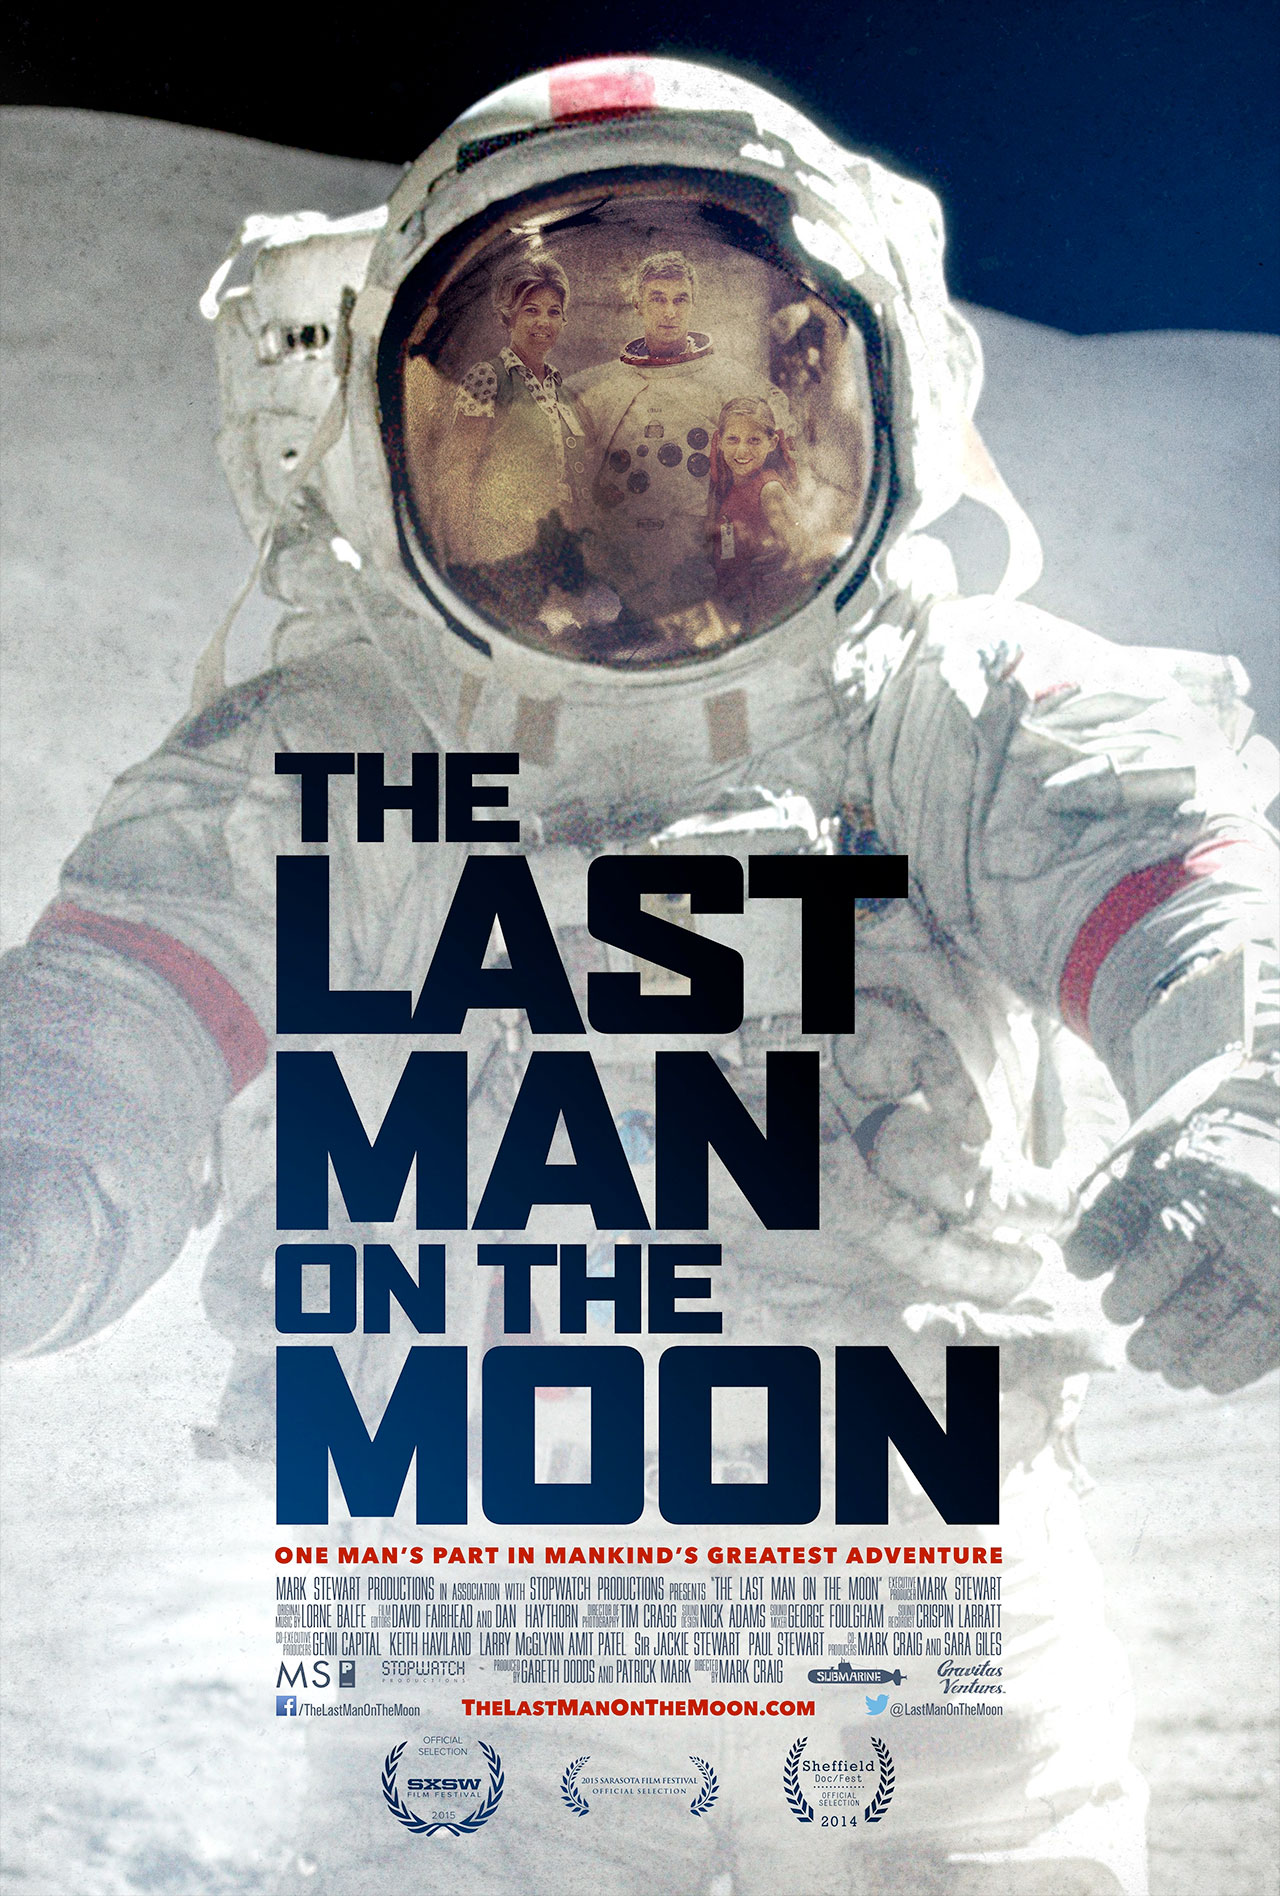 'Last Man on the Moon' shares astronaut's 'epic tale' in ...